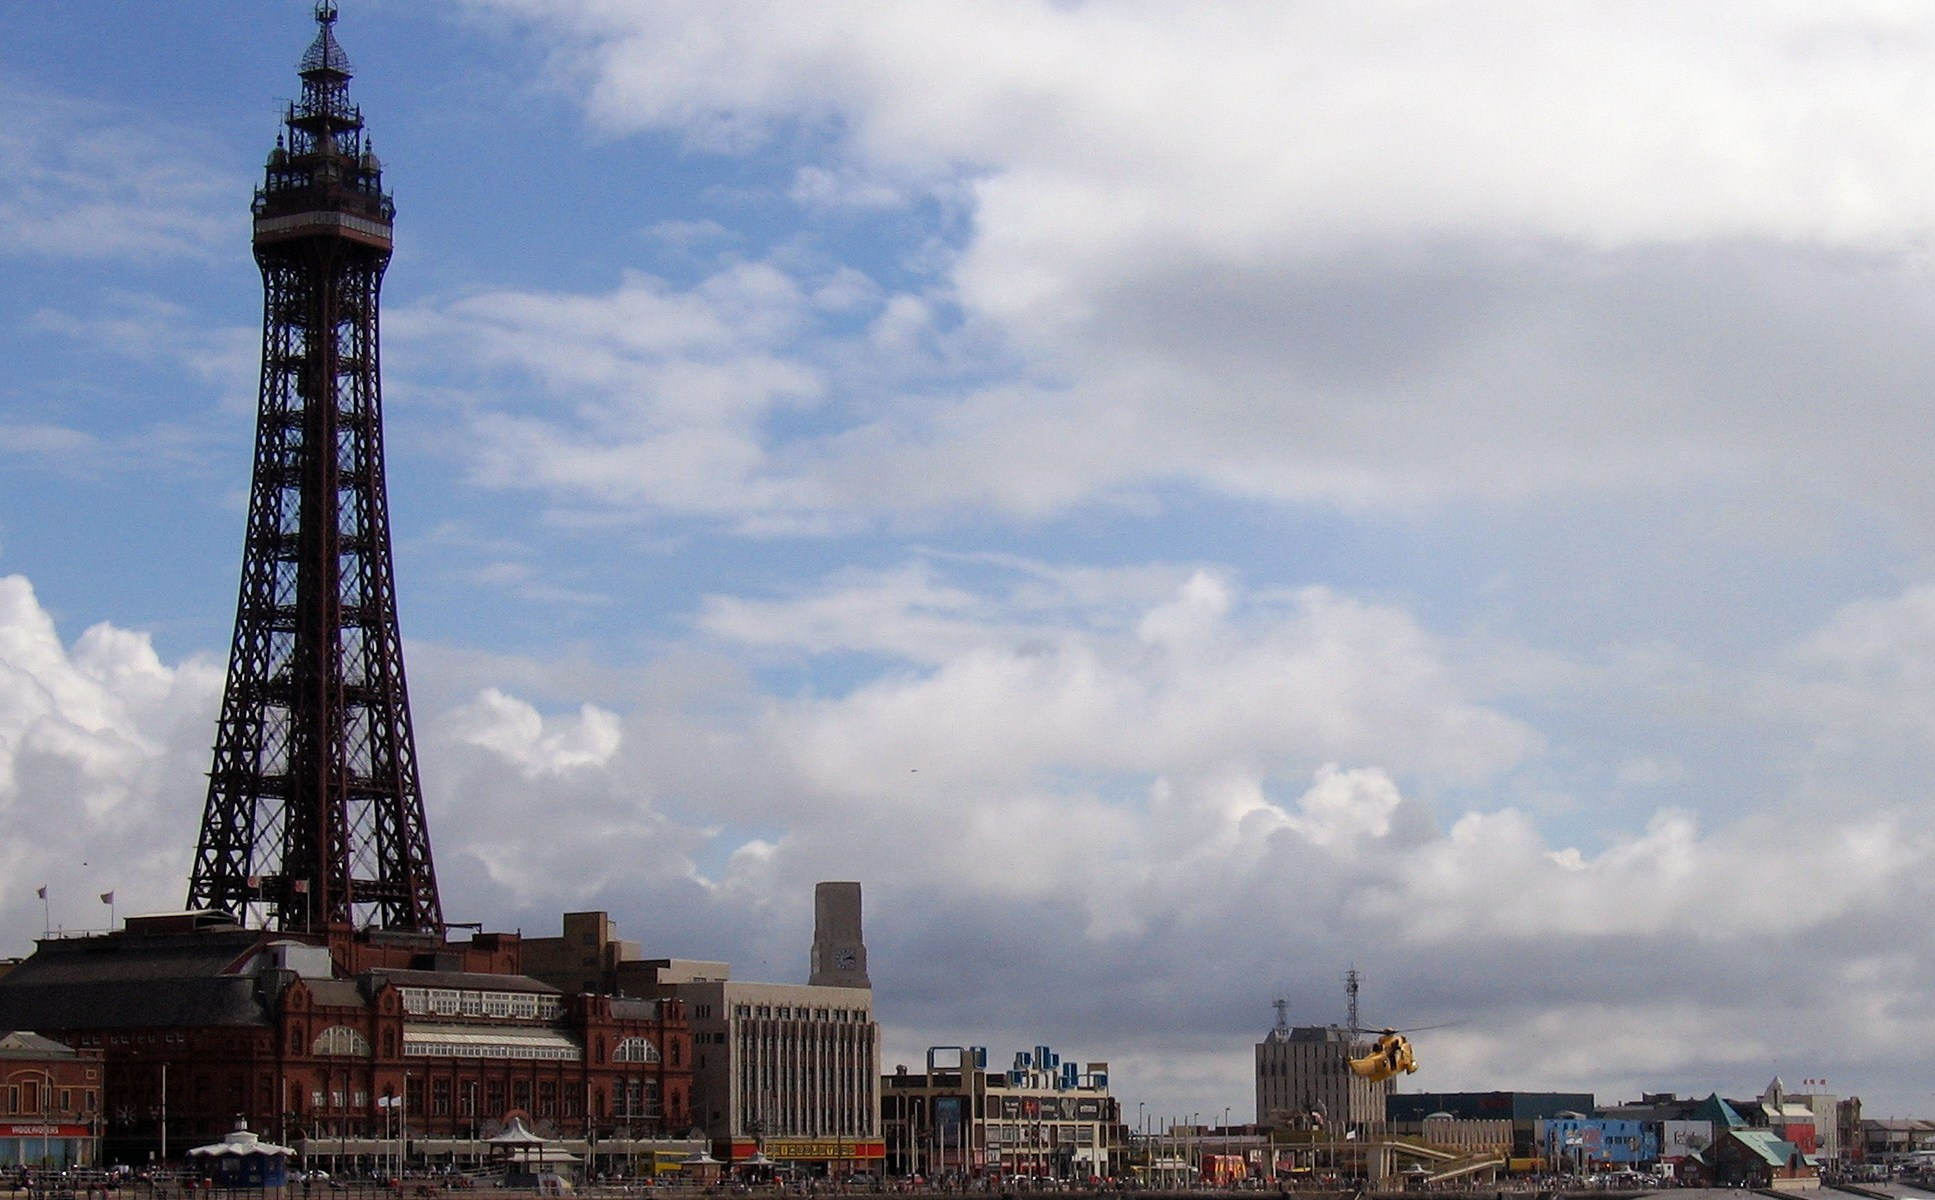 Blackpool Tower view from North Pier - High Tide